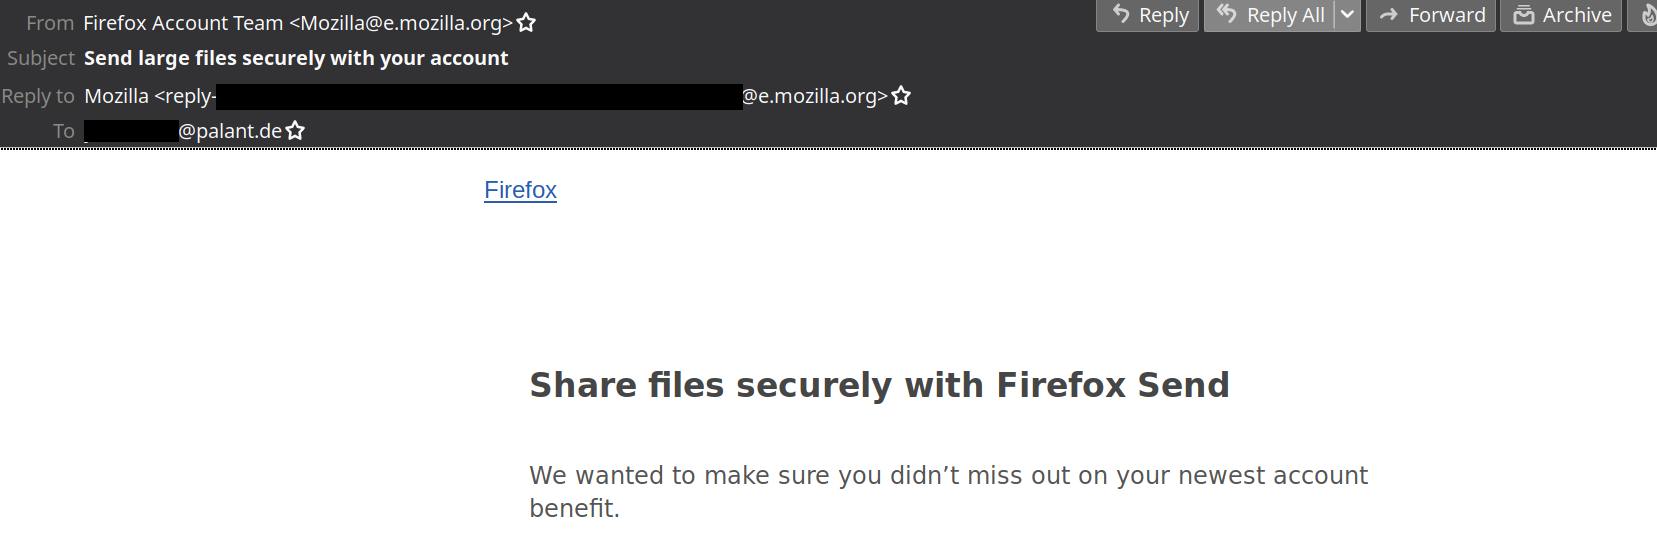 Dear Mozilla, please stop spamming!